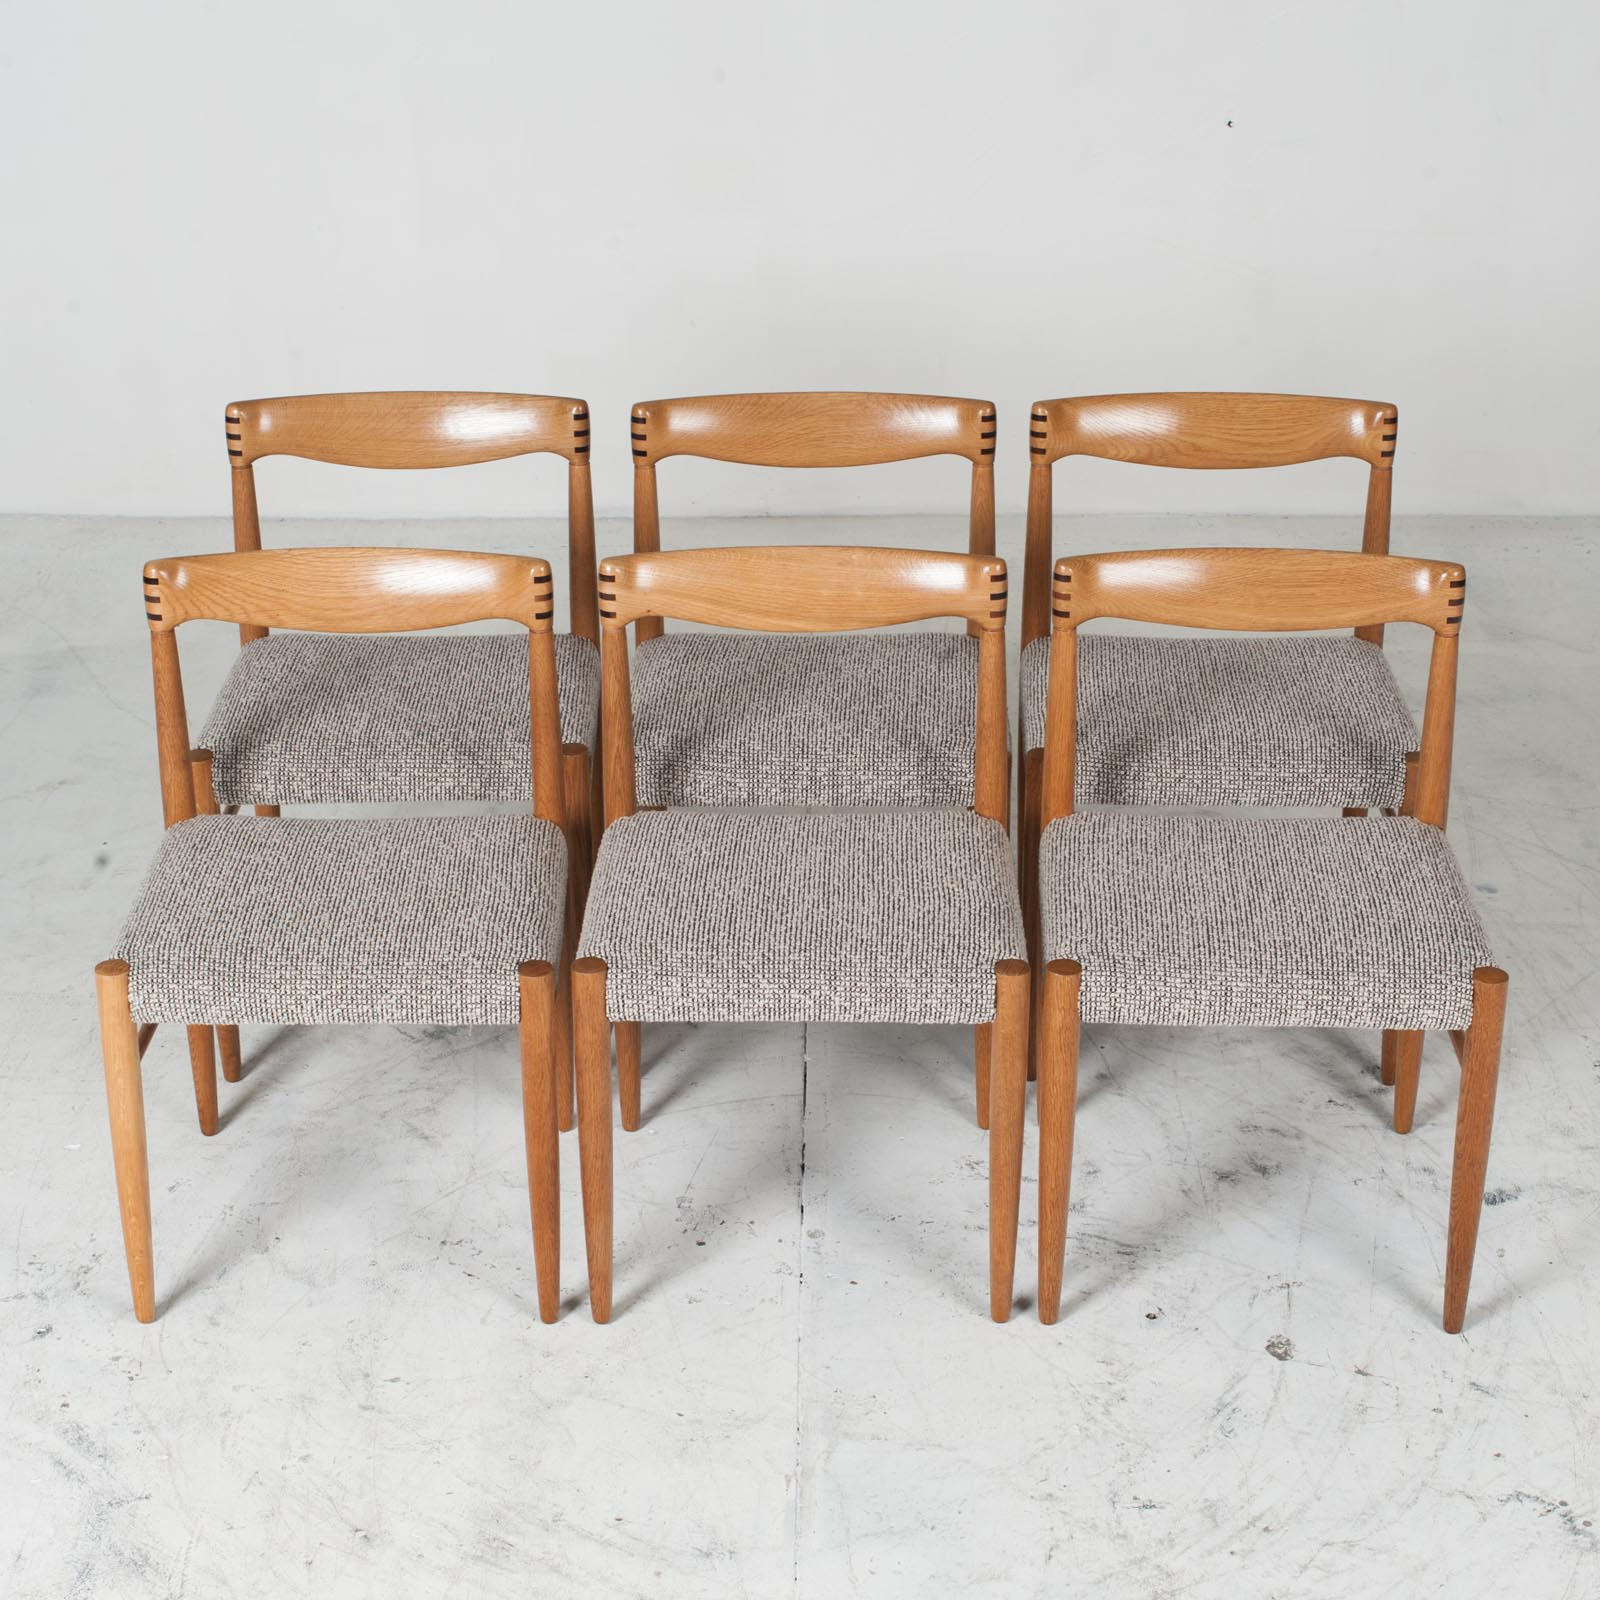 Set 6 Dining Chairs By H.w.klein In Oak And Textured Grey Wool 1960s Denmark 013